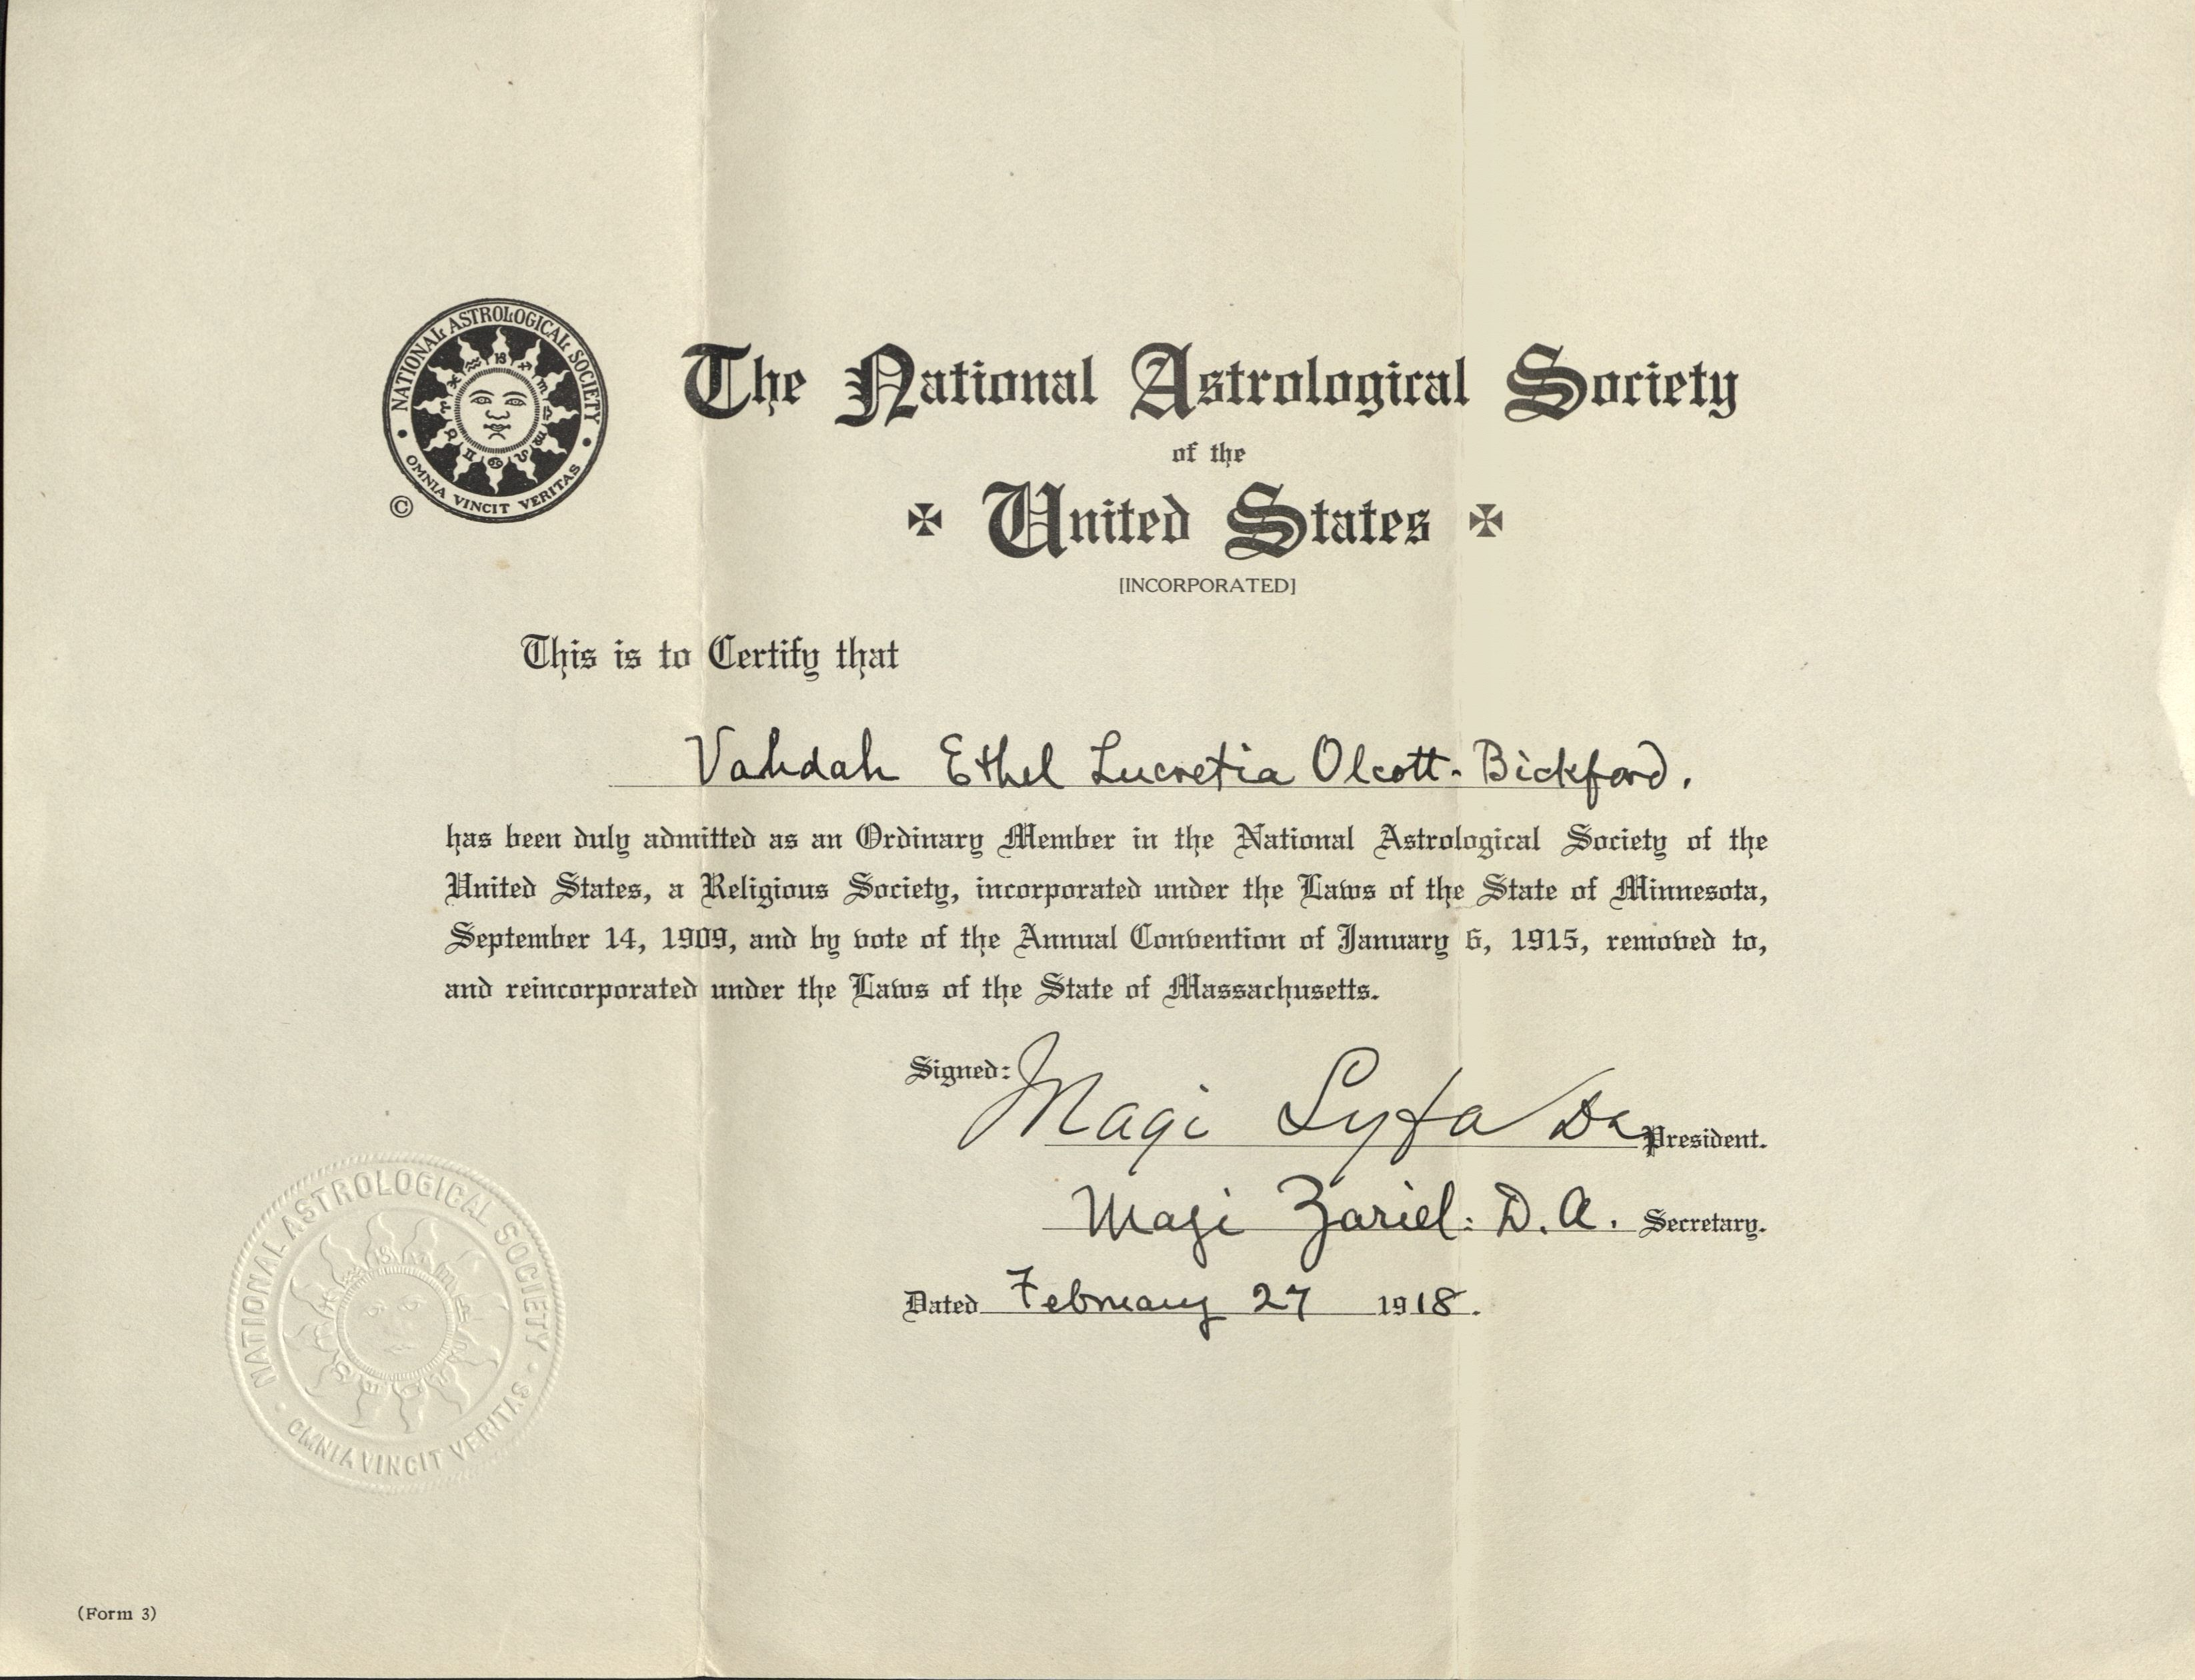 Inspirational photograph of norwalk birth certificate business los angeles archivists collectiveastrological archives los angeles archivists collectiveastrological archives from norwalk birth certificate aiddatafo Choice Image